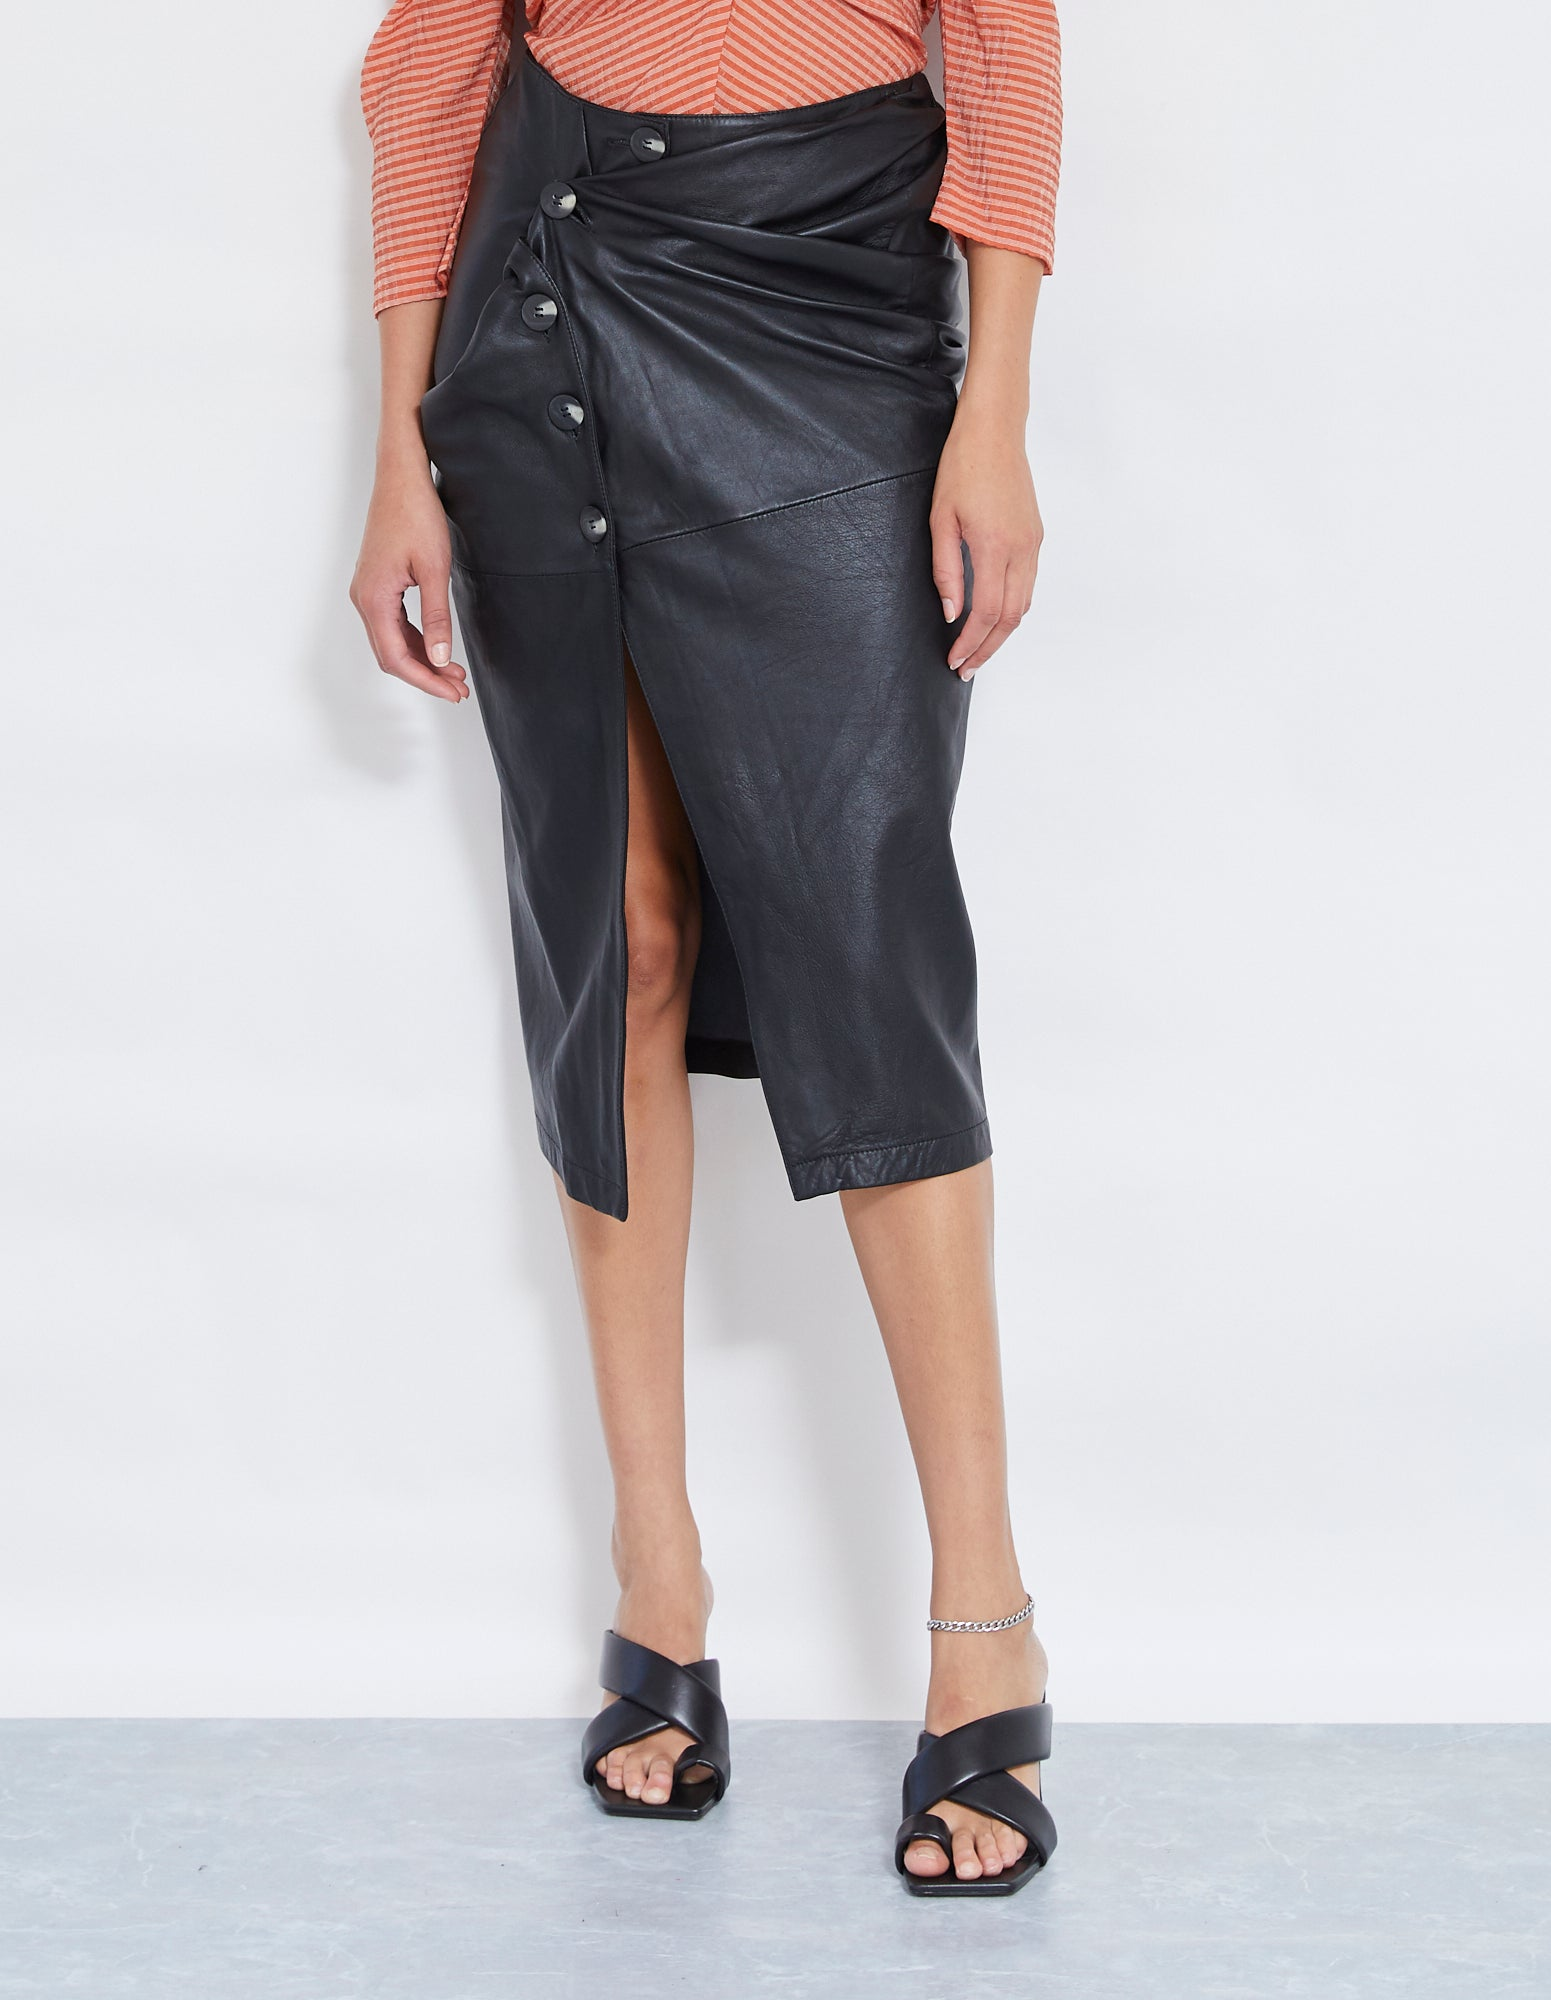 BUICK LEATHER TWIST SKIRT | BLACK